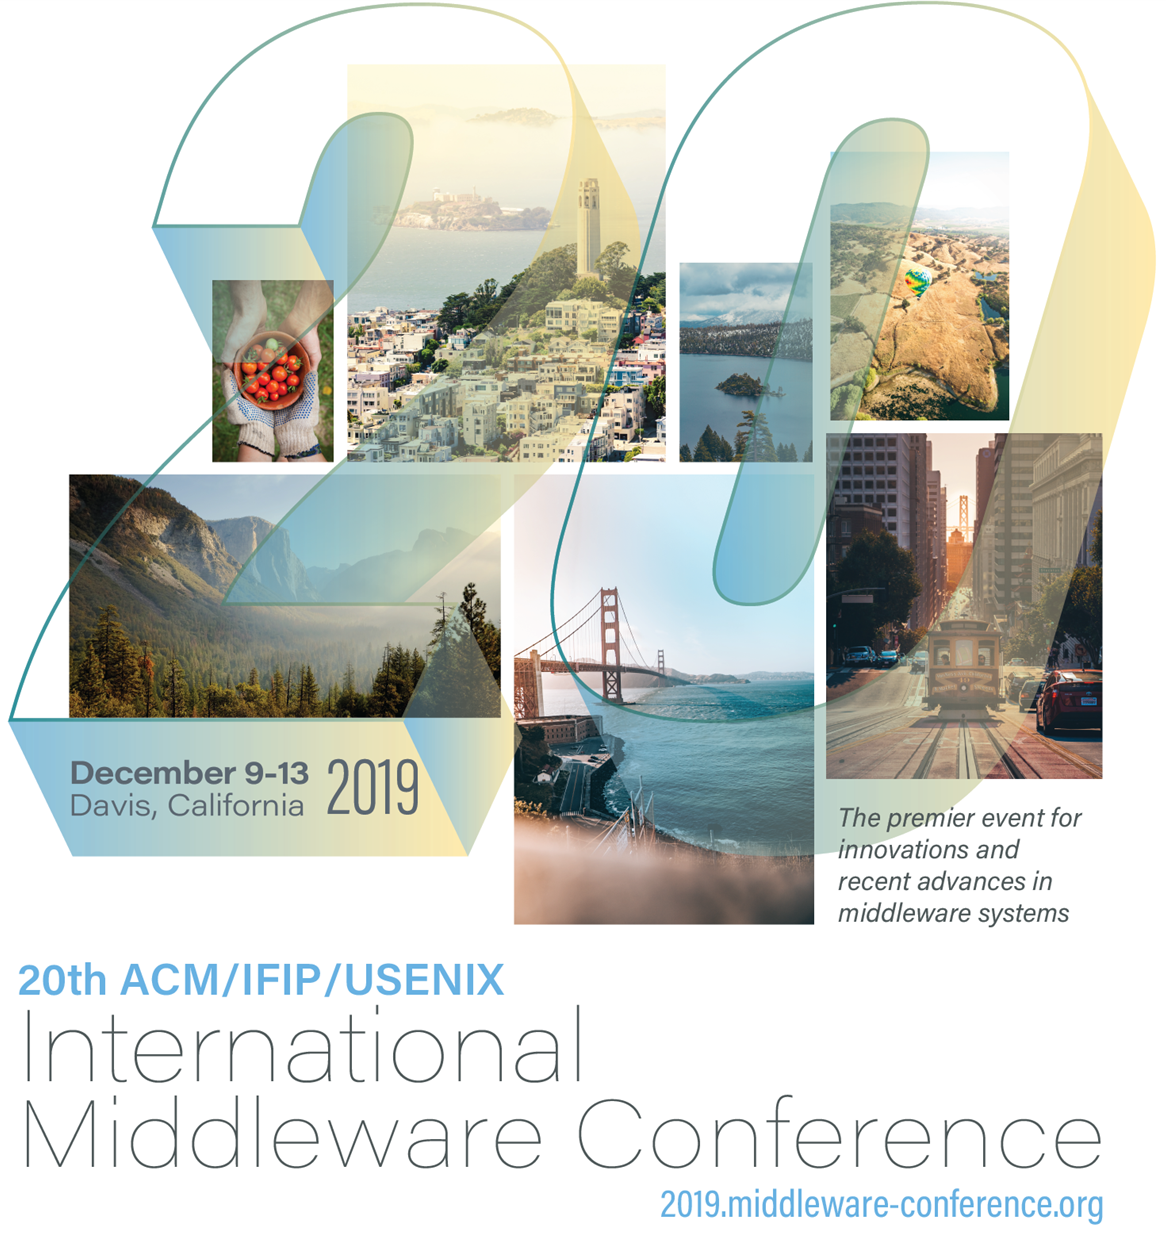 20th ACM/IFIP International Middleware Conference